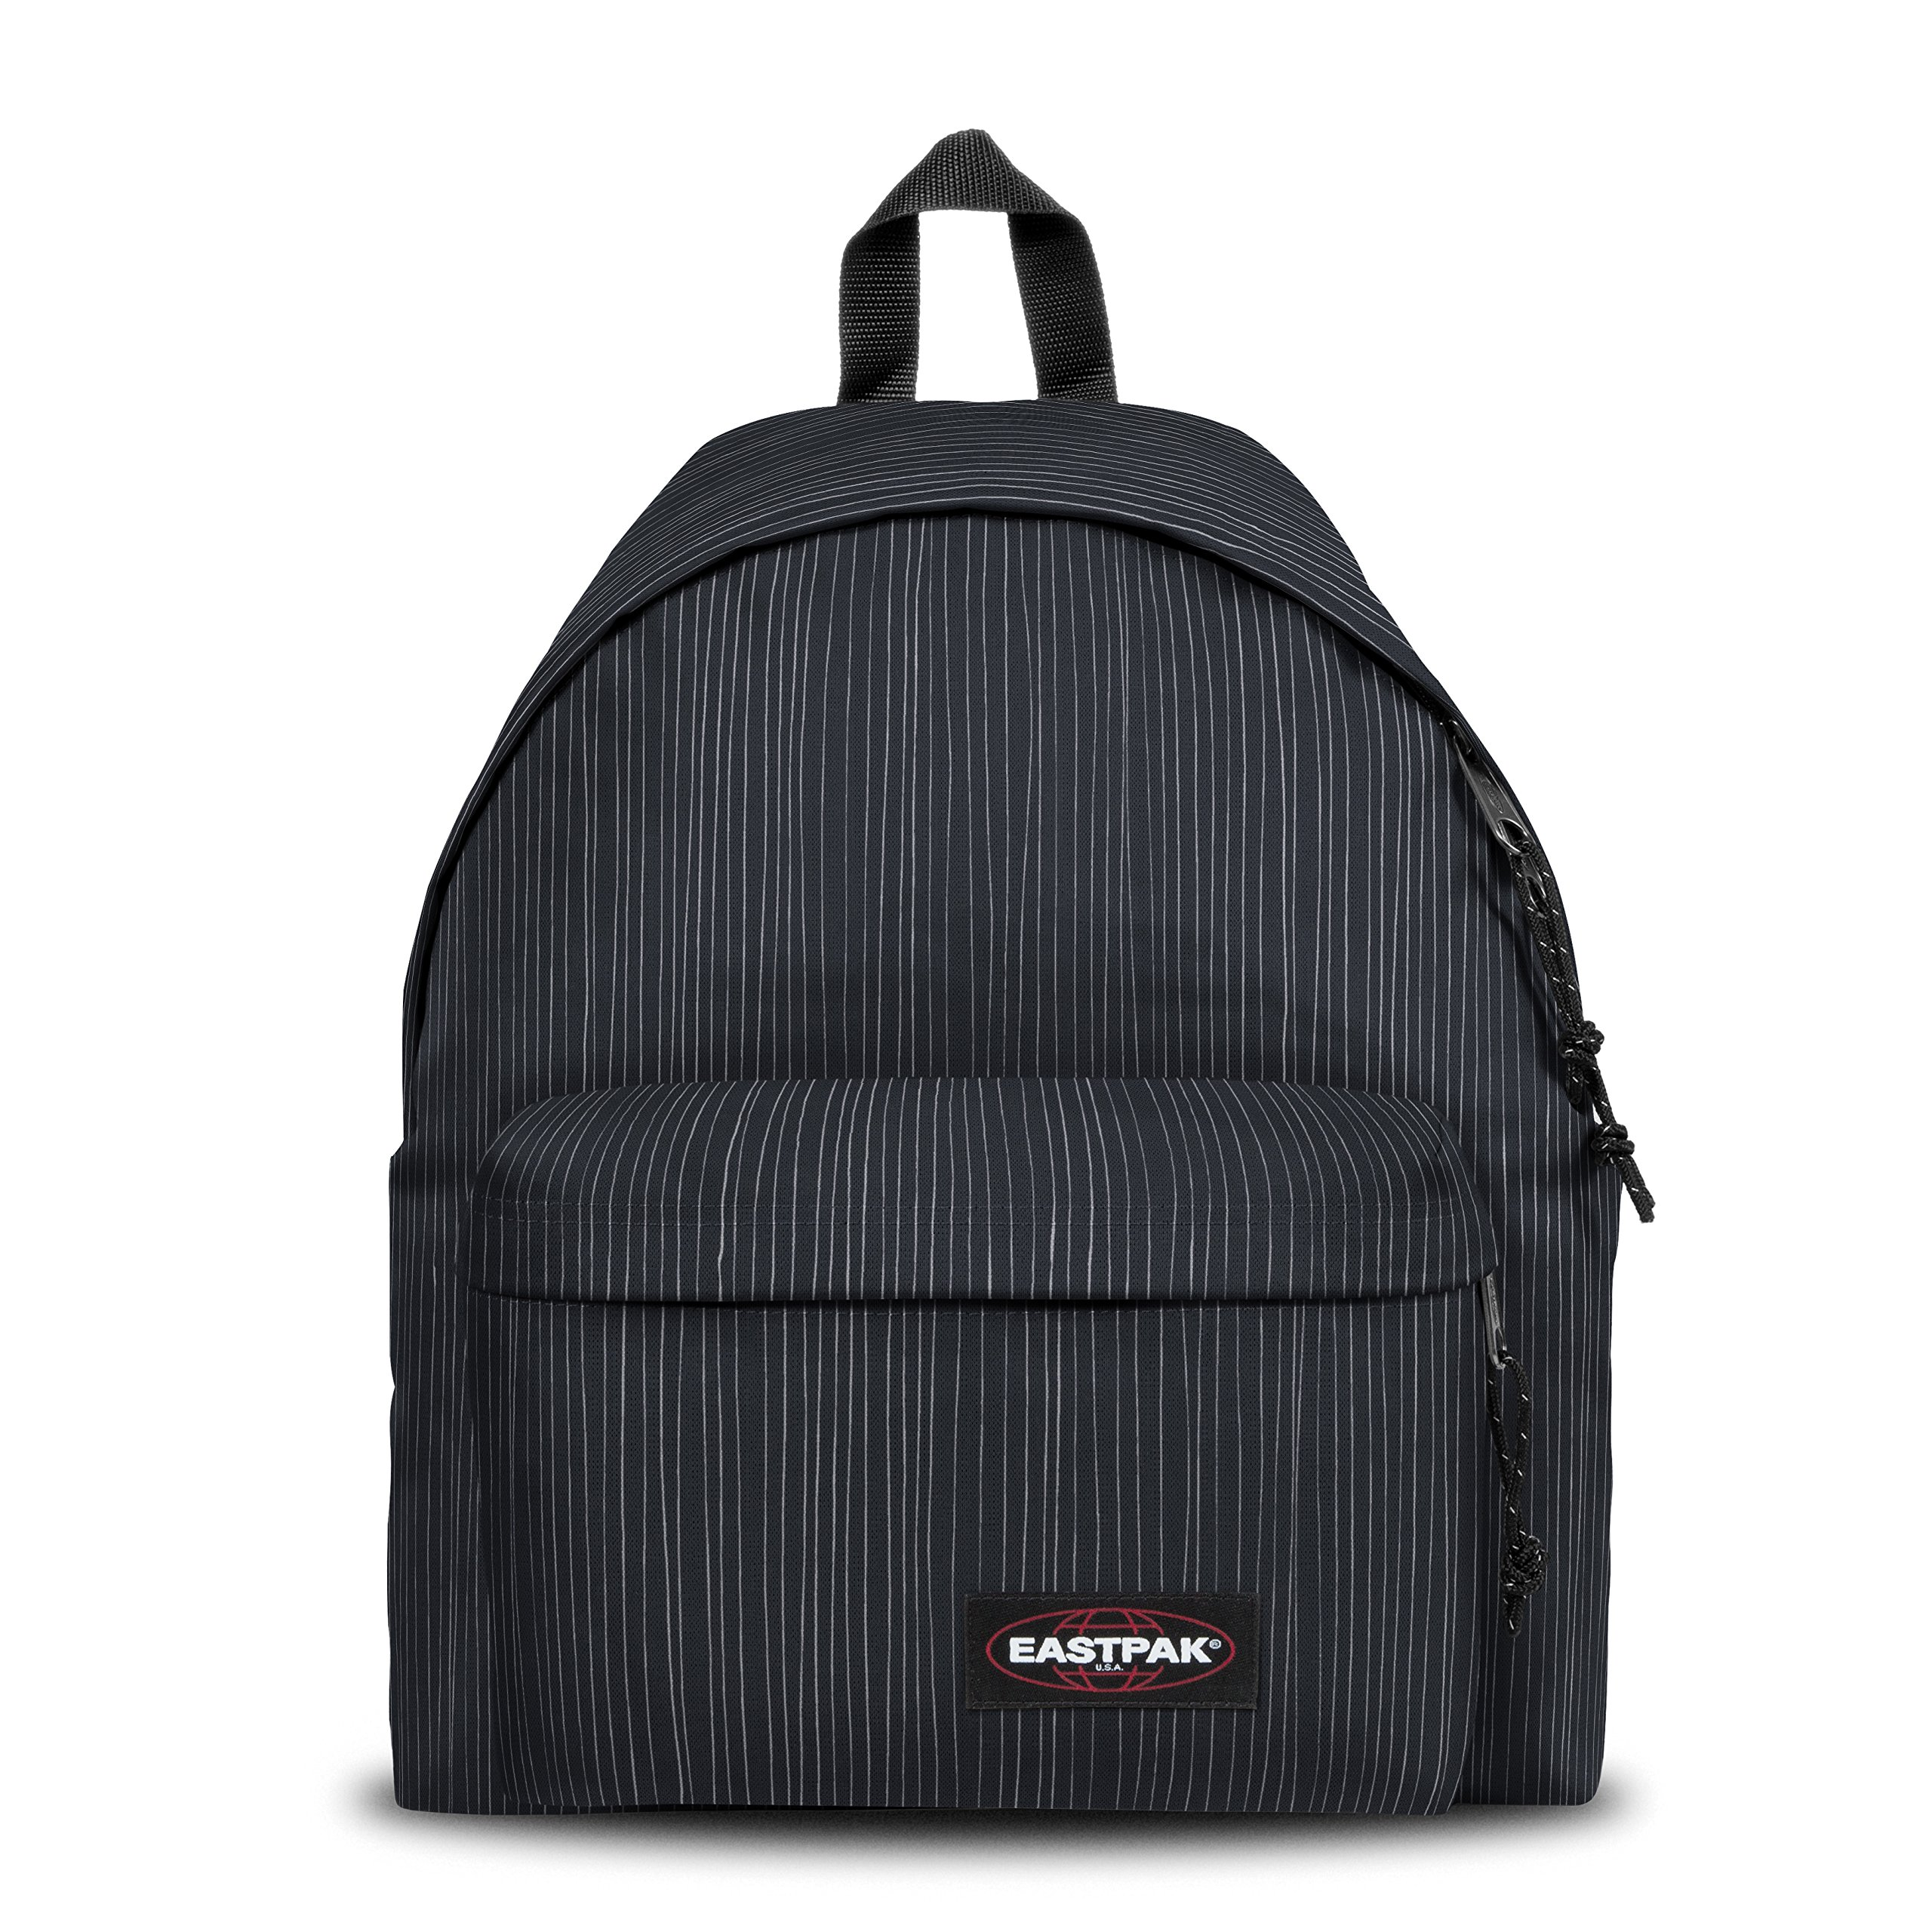 Eastpak 加厚背包 40 厘米 Blue (Stripe-it Cloud) Blue (Stripe-it Cloud)